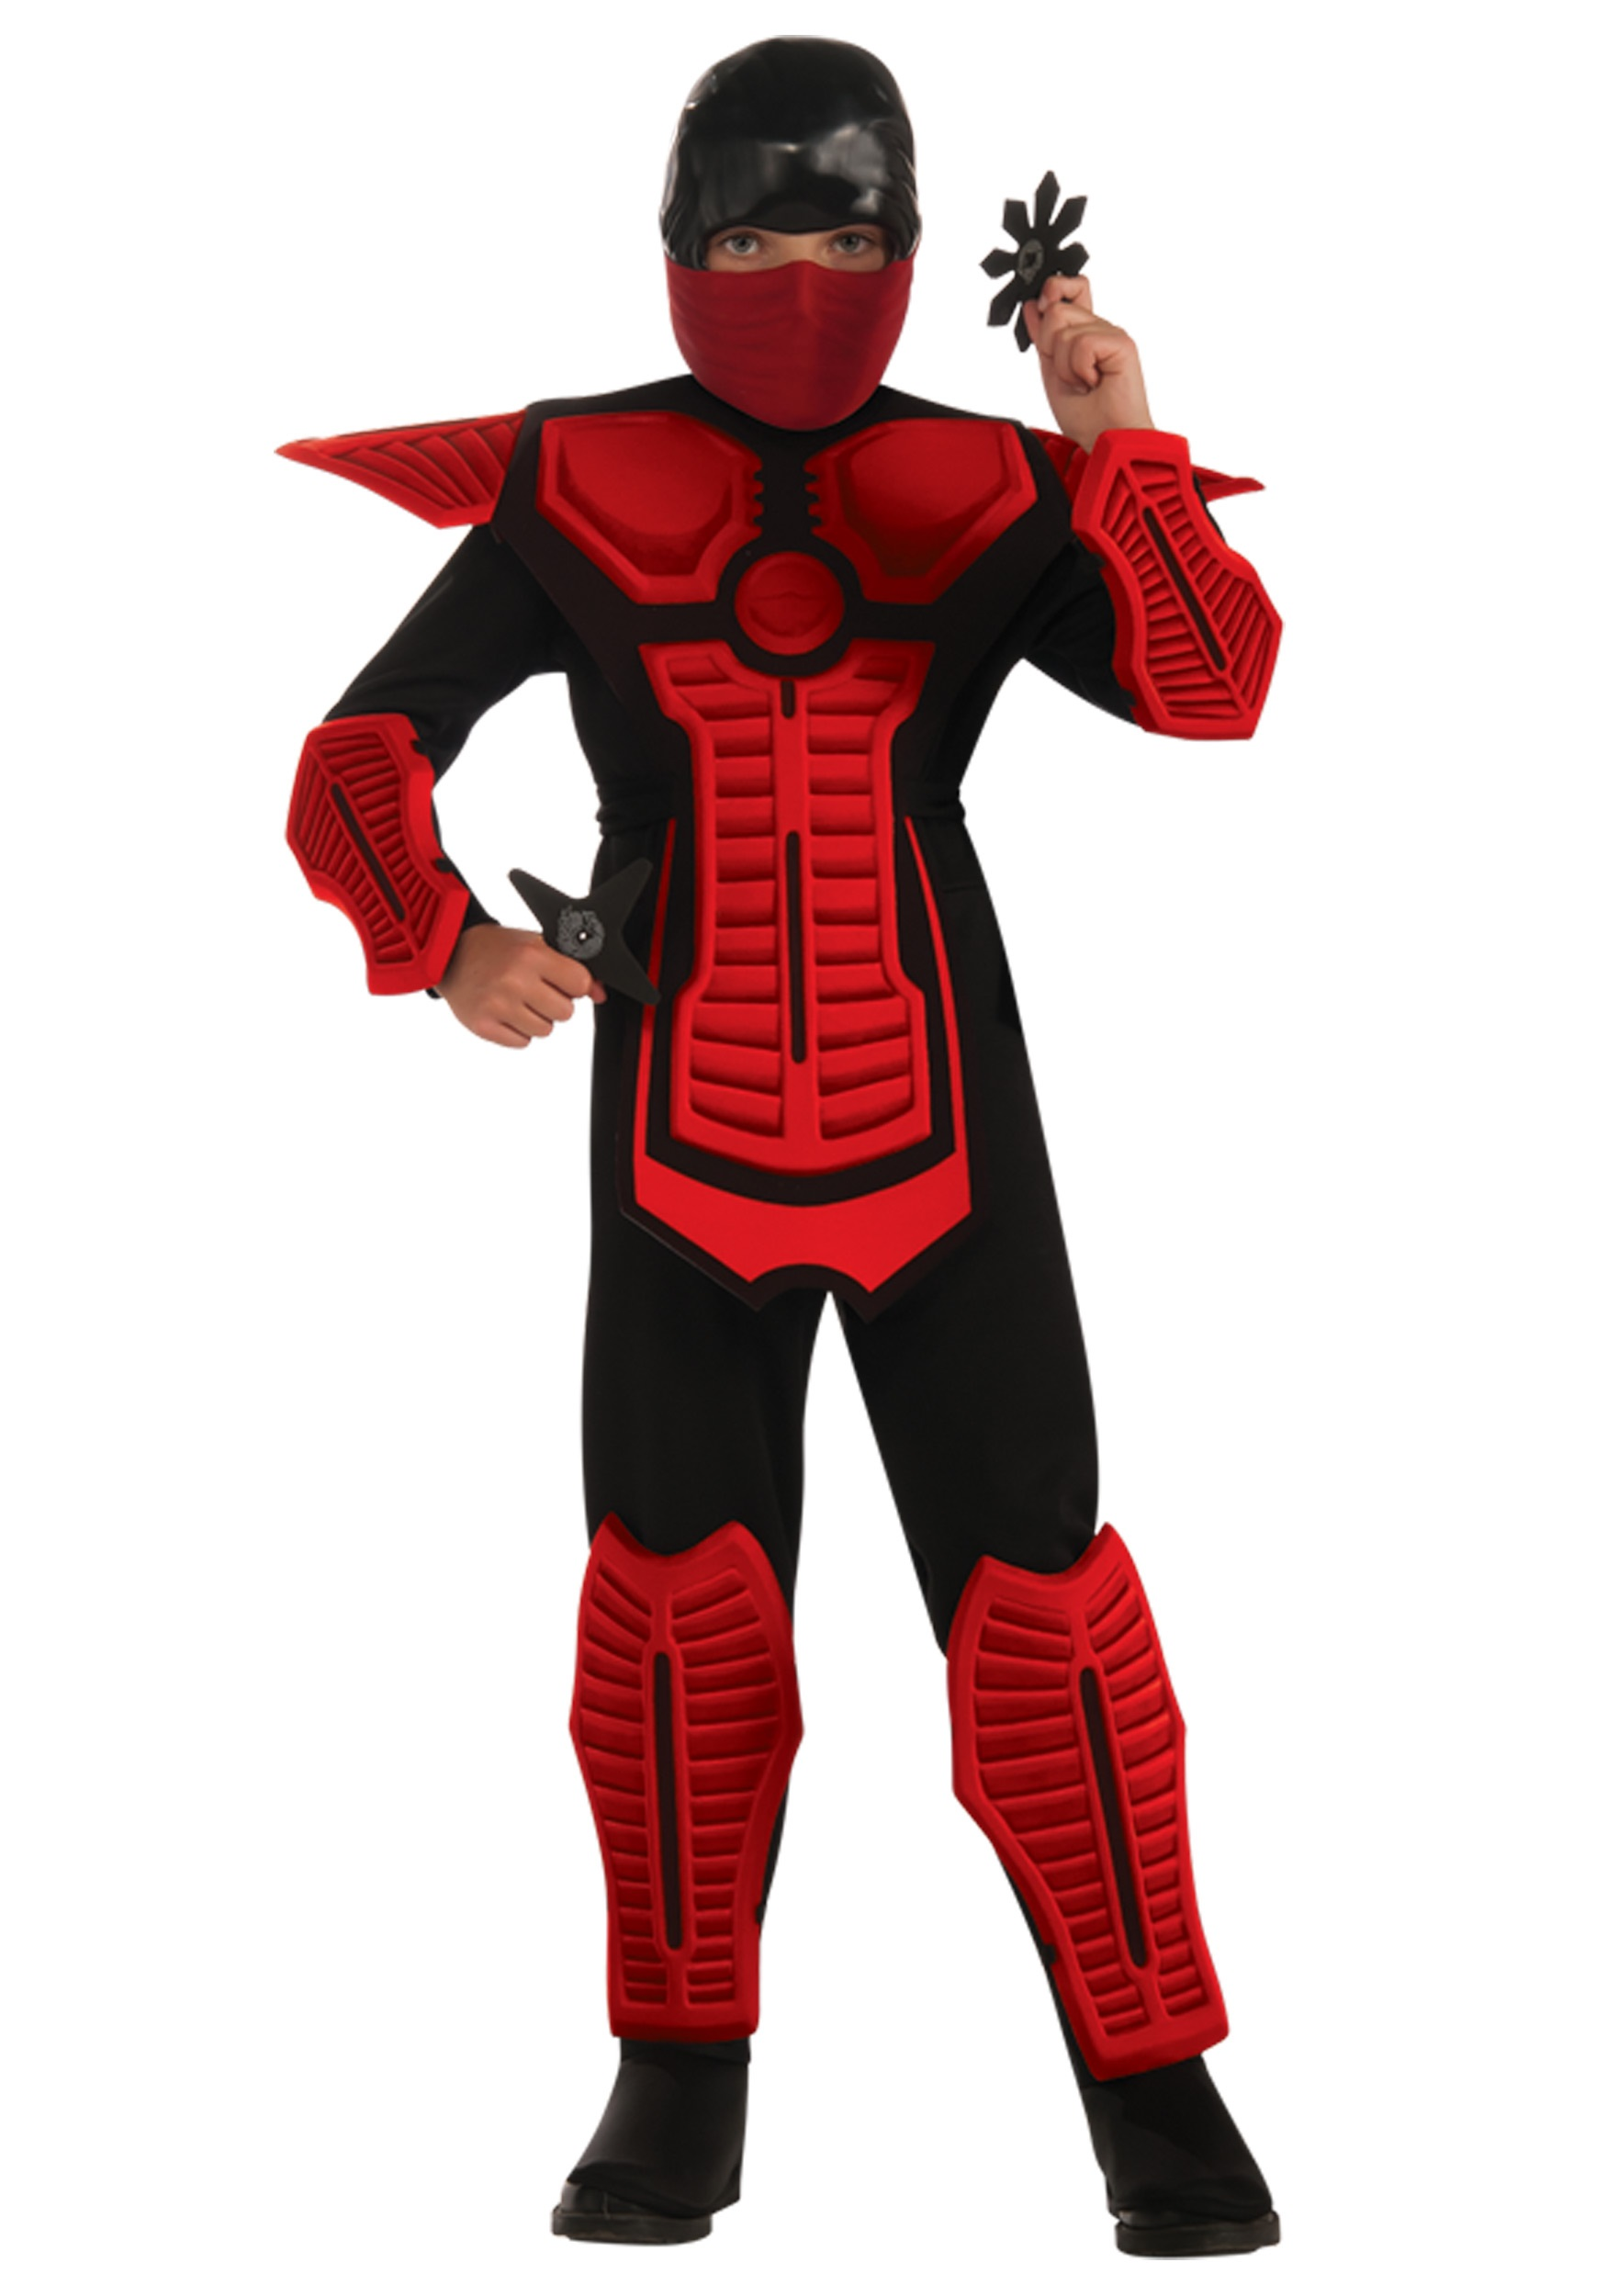 Child Red Ninja Costume  sc 1 st  Halloween Costumes & Child Red Ninja Costume - Halloween Costumes